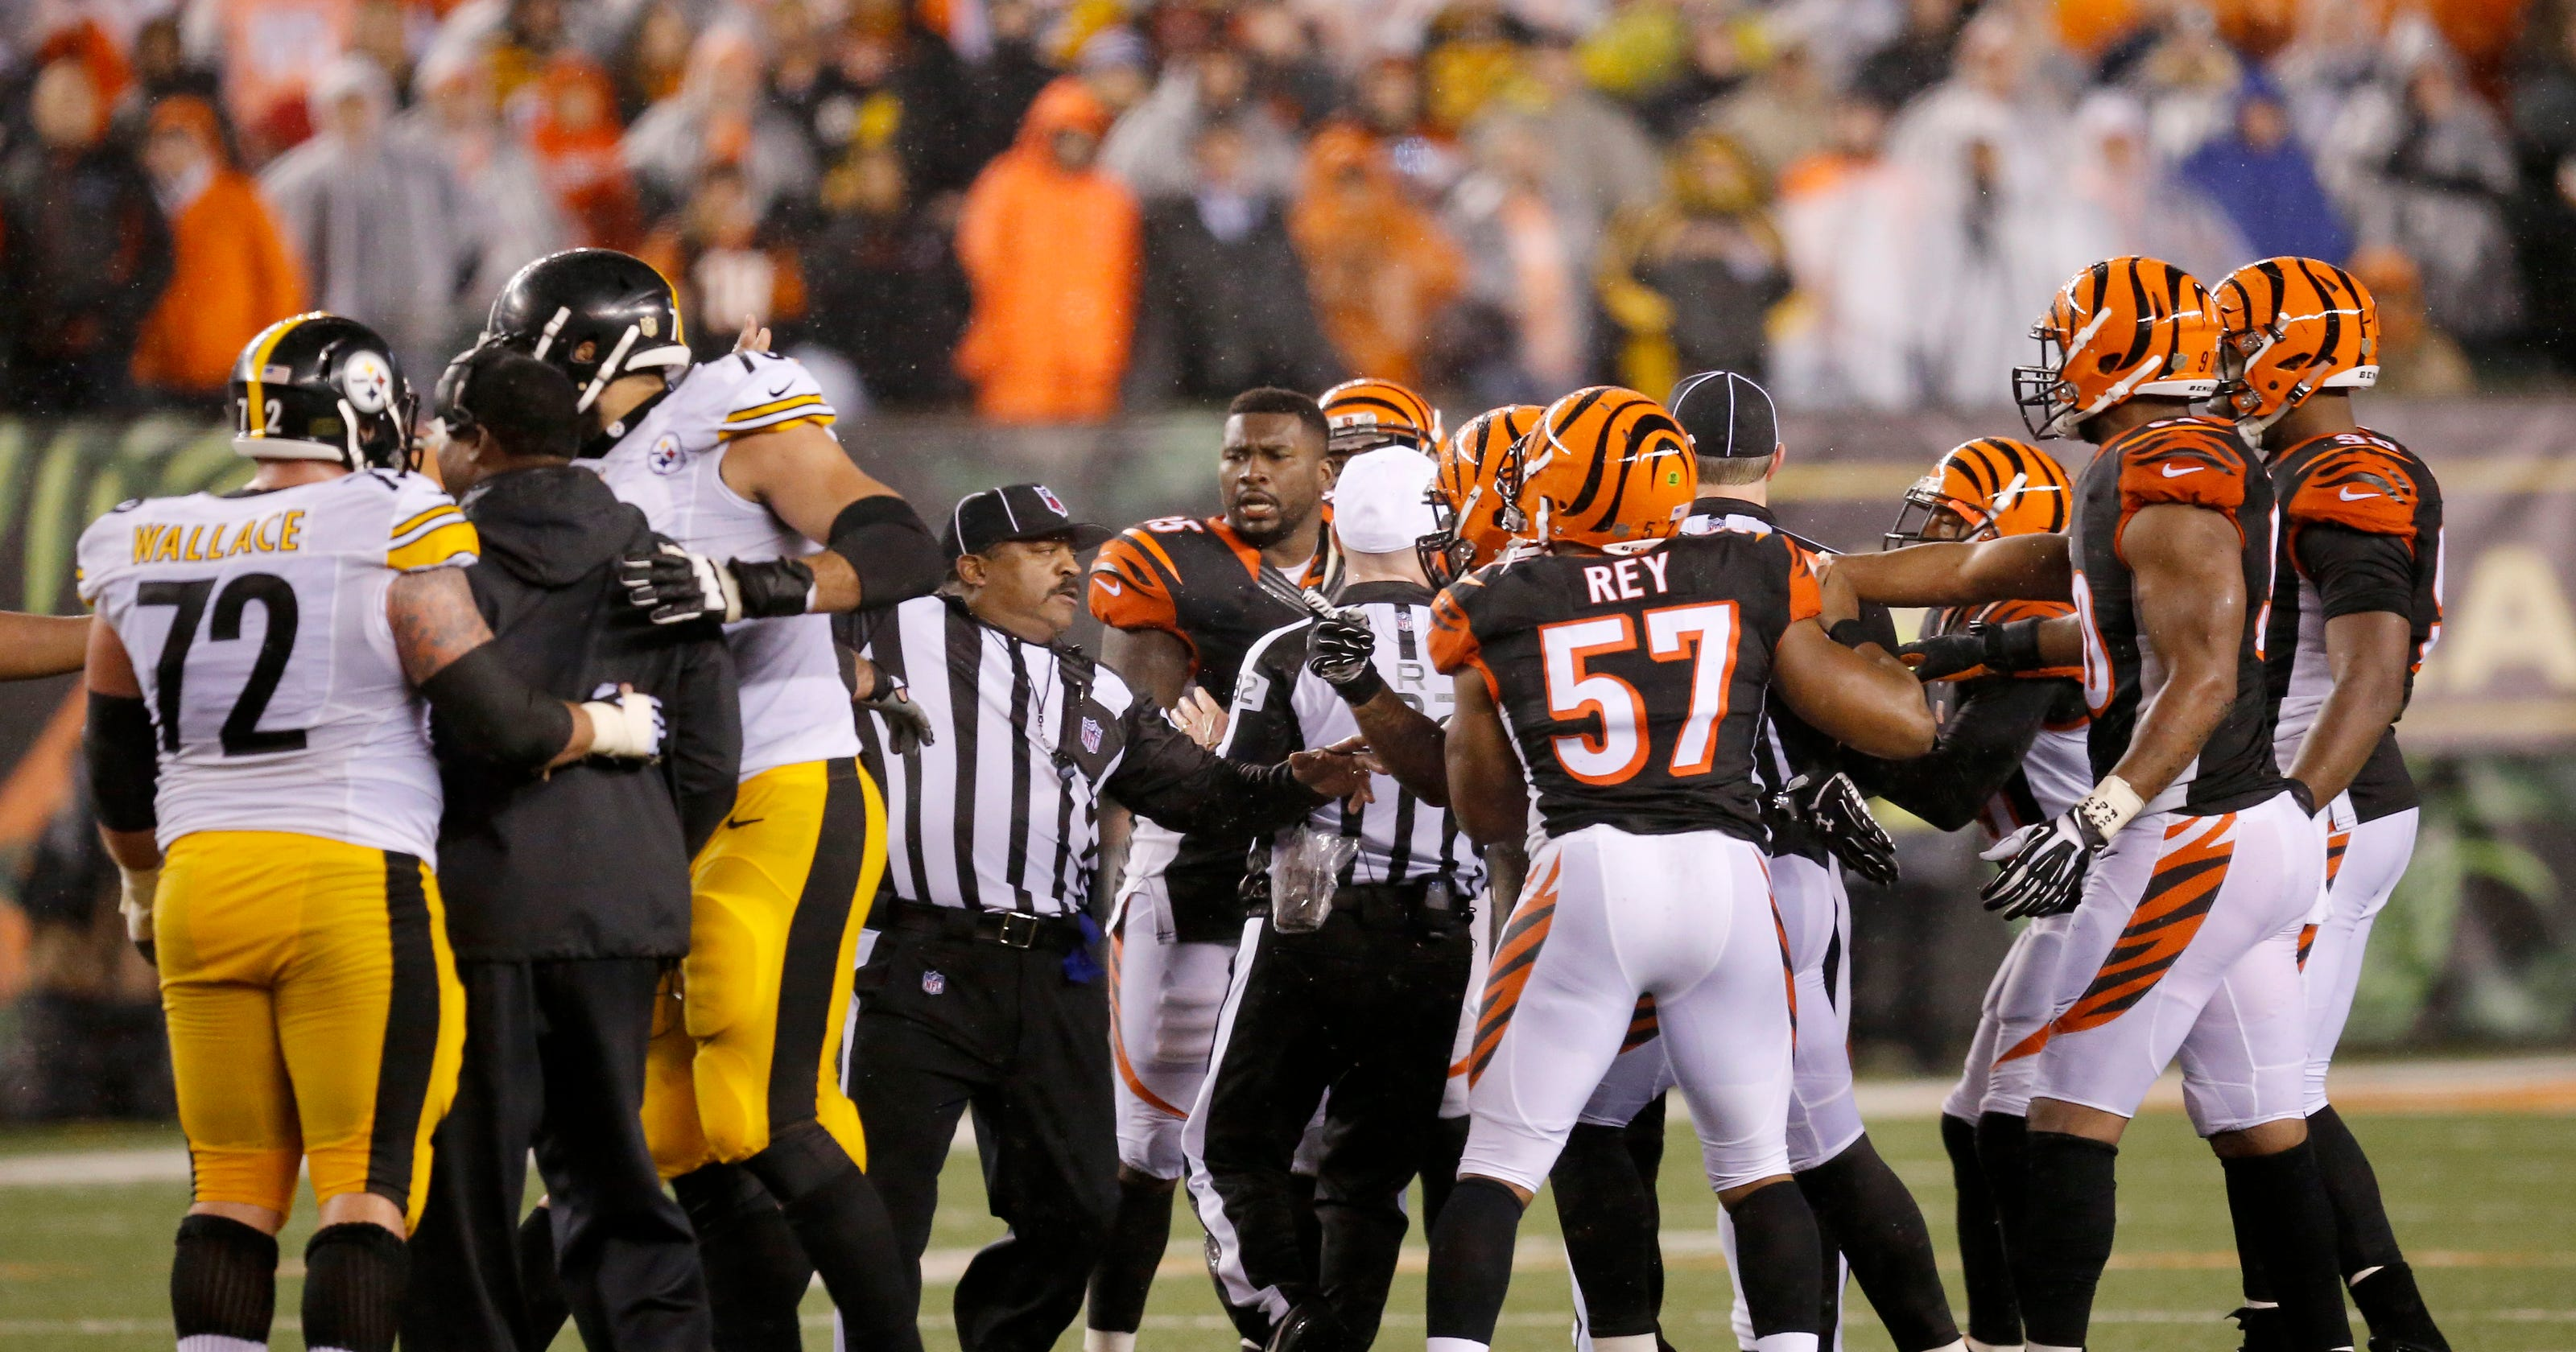 92dcf480f02 Steelers-Bengals rivalry has brought NFL rules changes